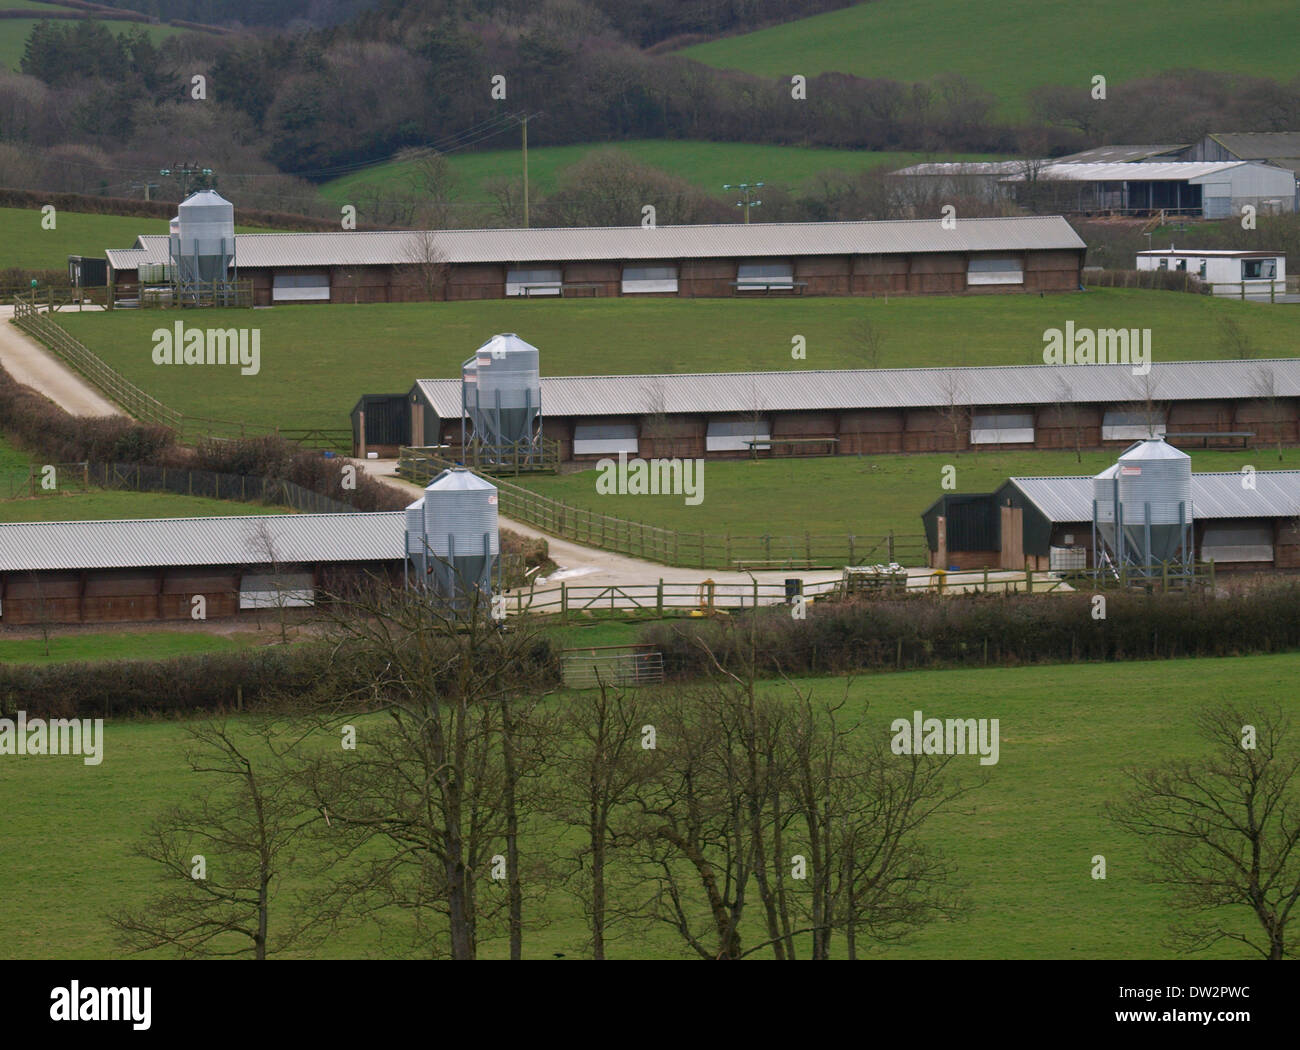 Poultry farm, Cornwall, UK - Stock Image